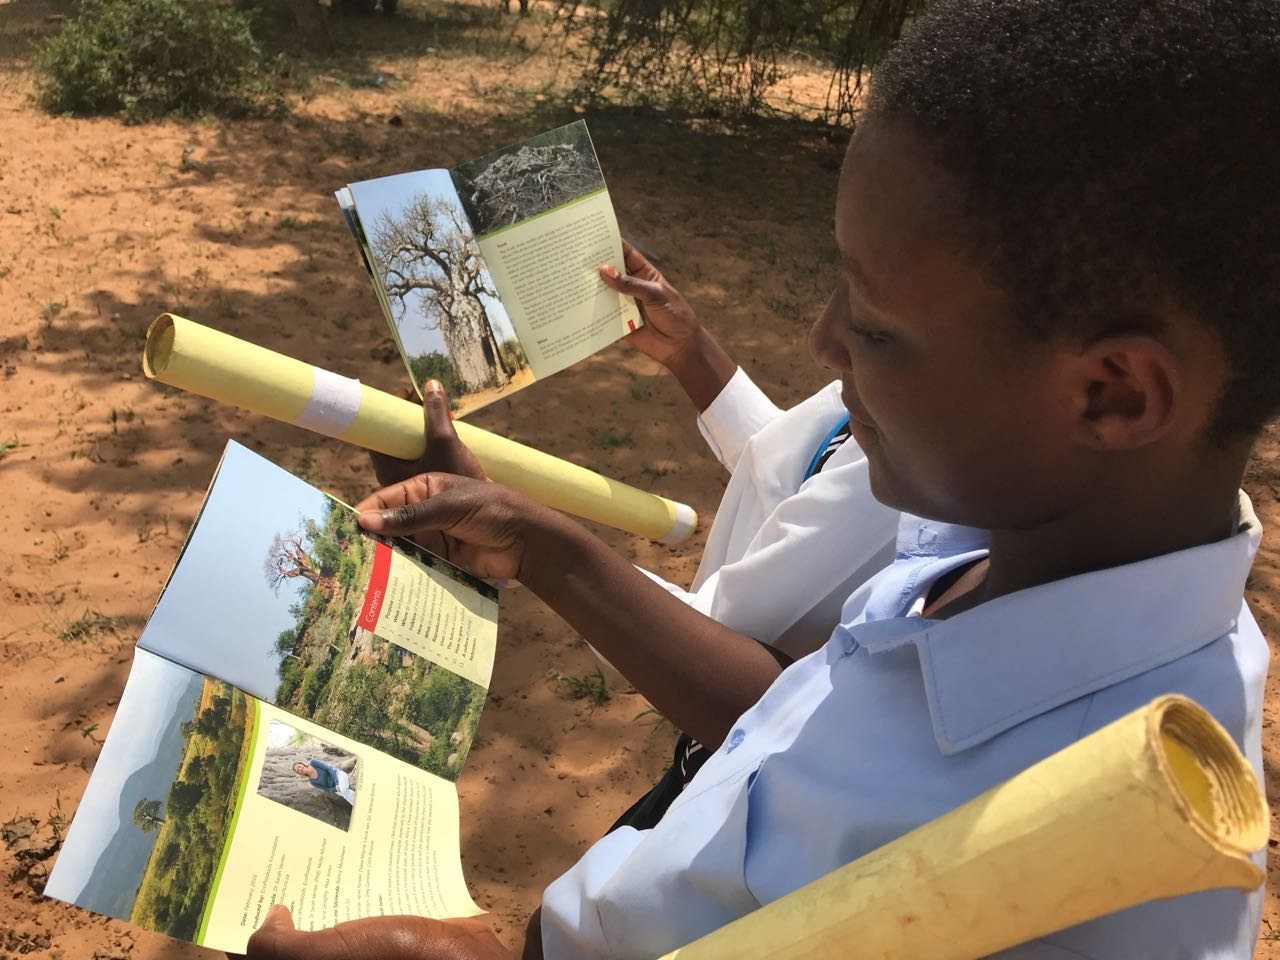 2018 April: The Little BIG BAOBAB Book spreads its wings